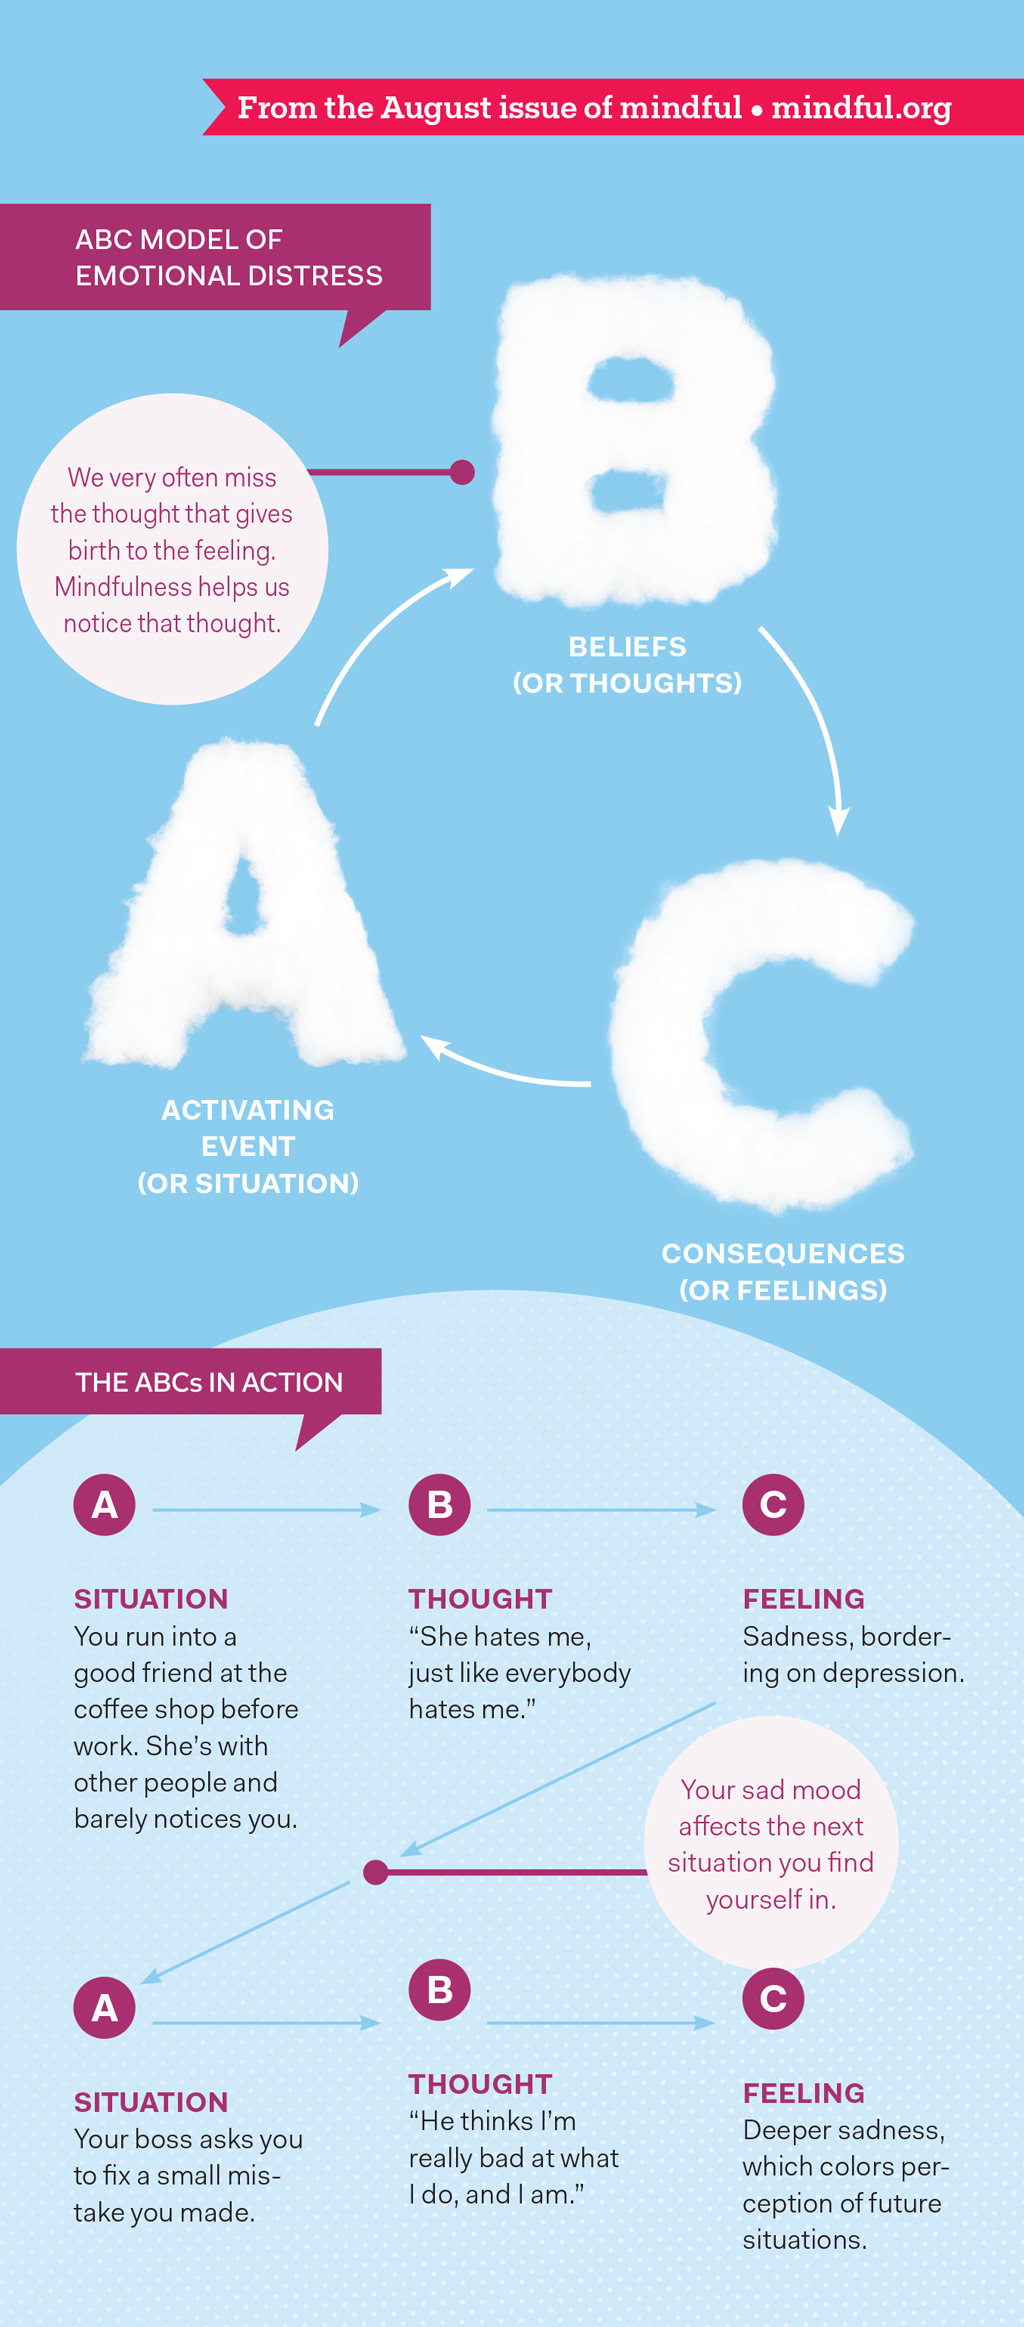 The ABC Model of emotional distress